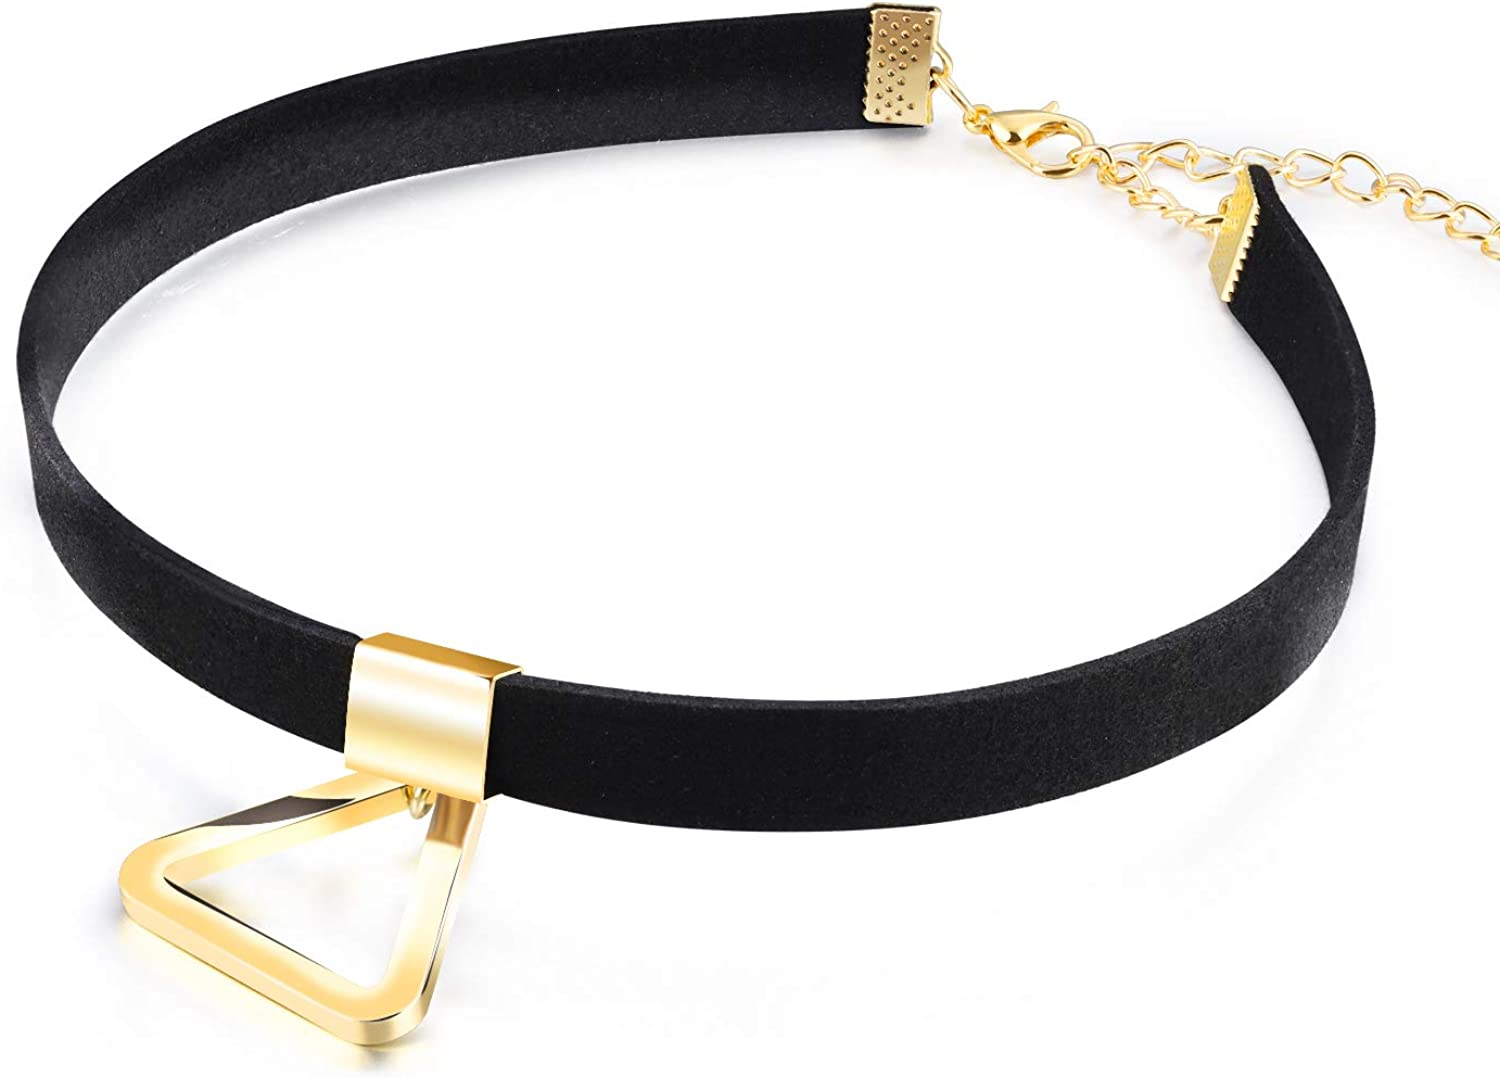 LQinuan Gold Pendants Black Flannel Choker Necklaces Jewelry for Women Girls Gifts Presents